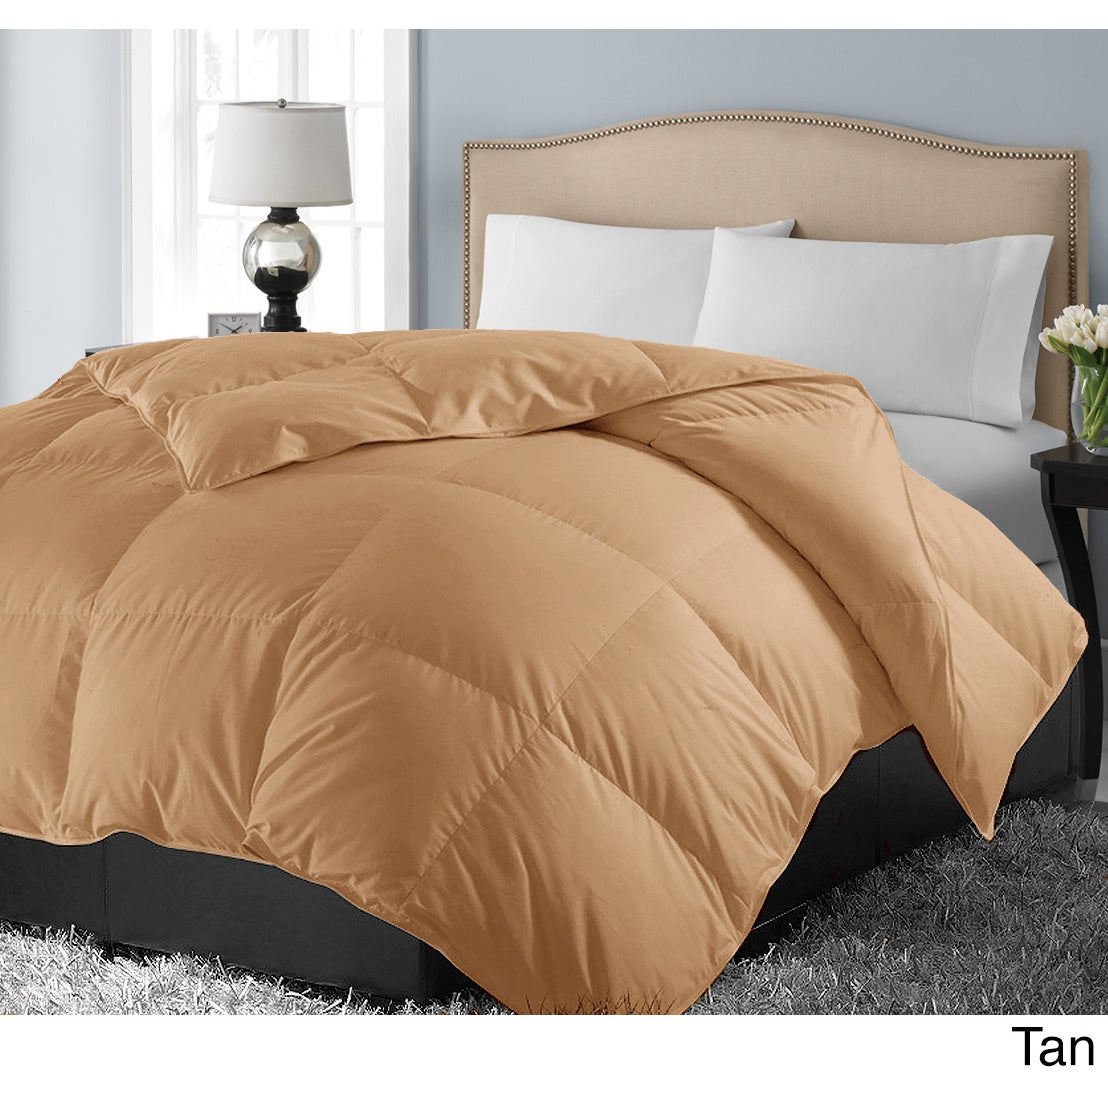 image ideas king comforter brown down combine bedding set to more modern of lostcoastshuttle